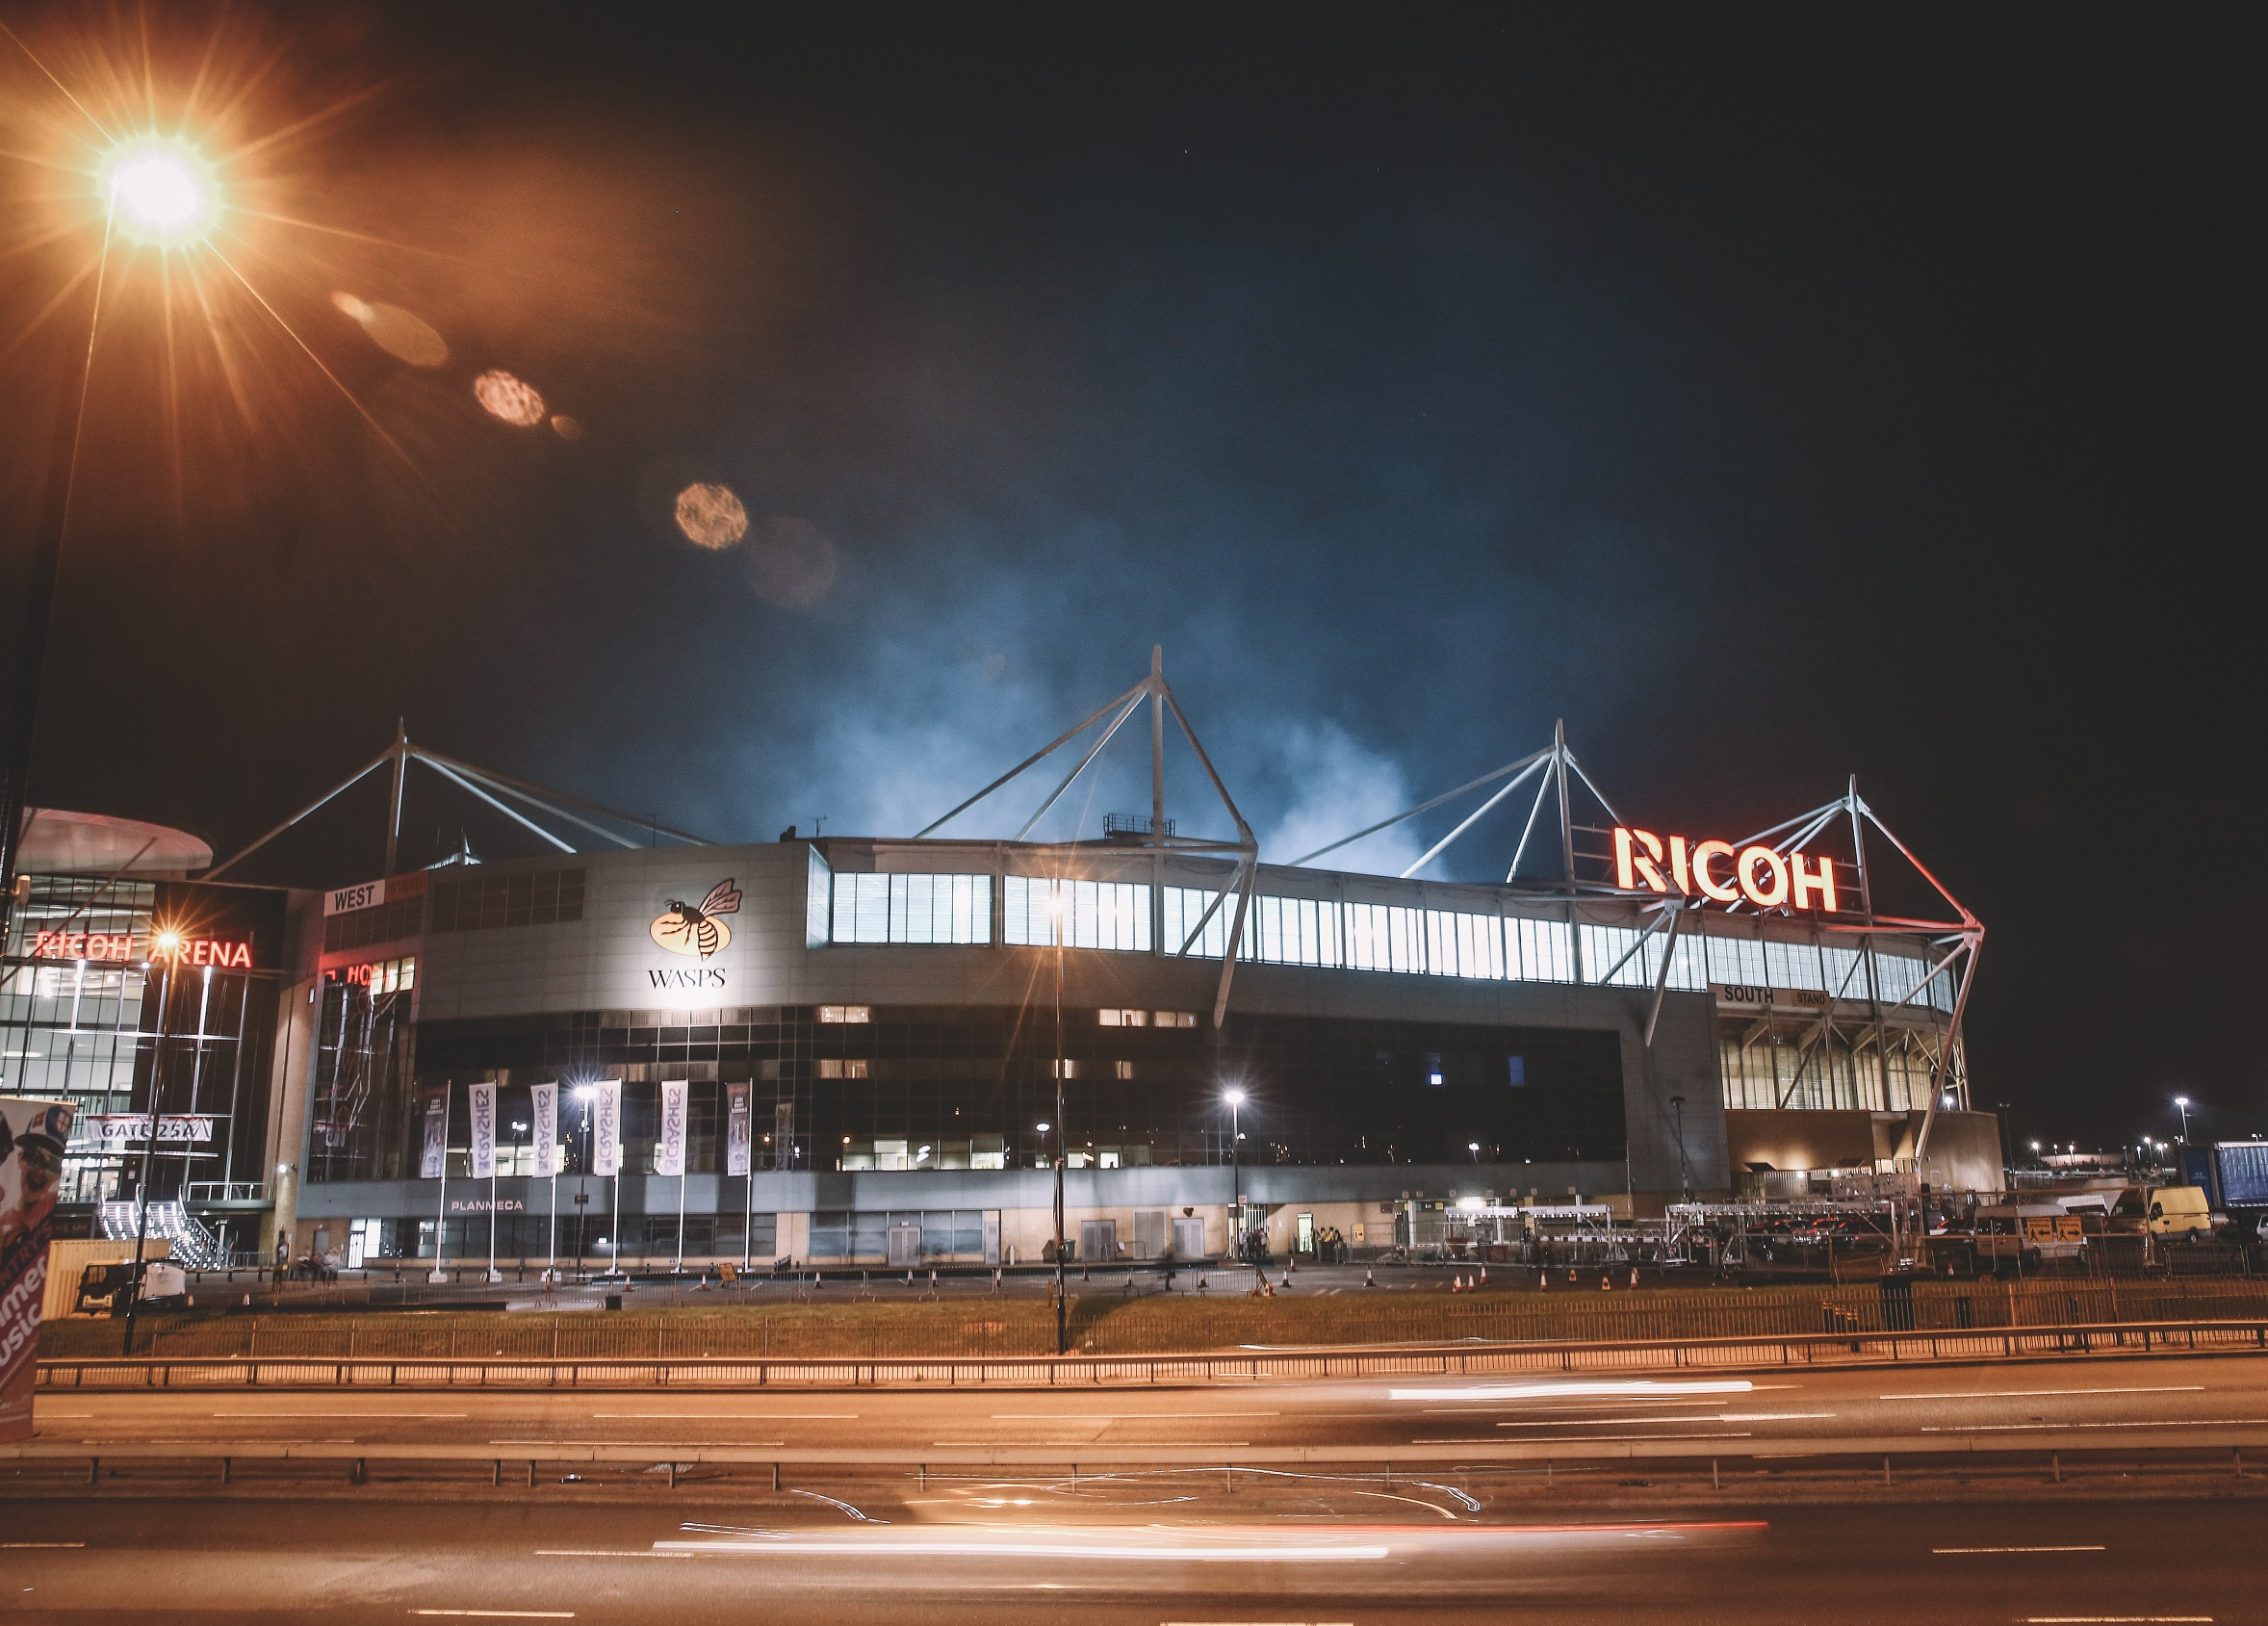 ricoh Arena Commonwealth